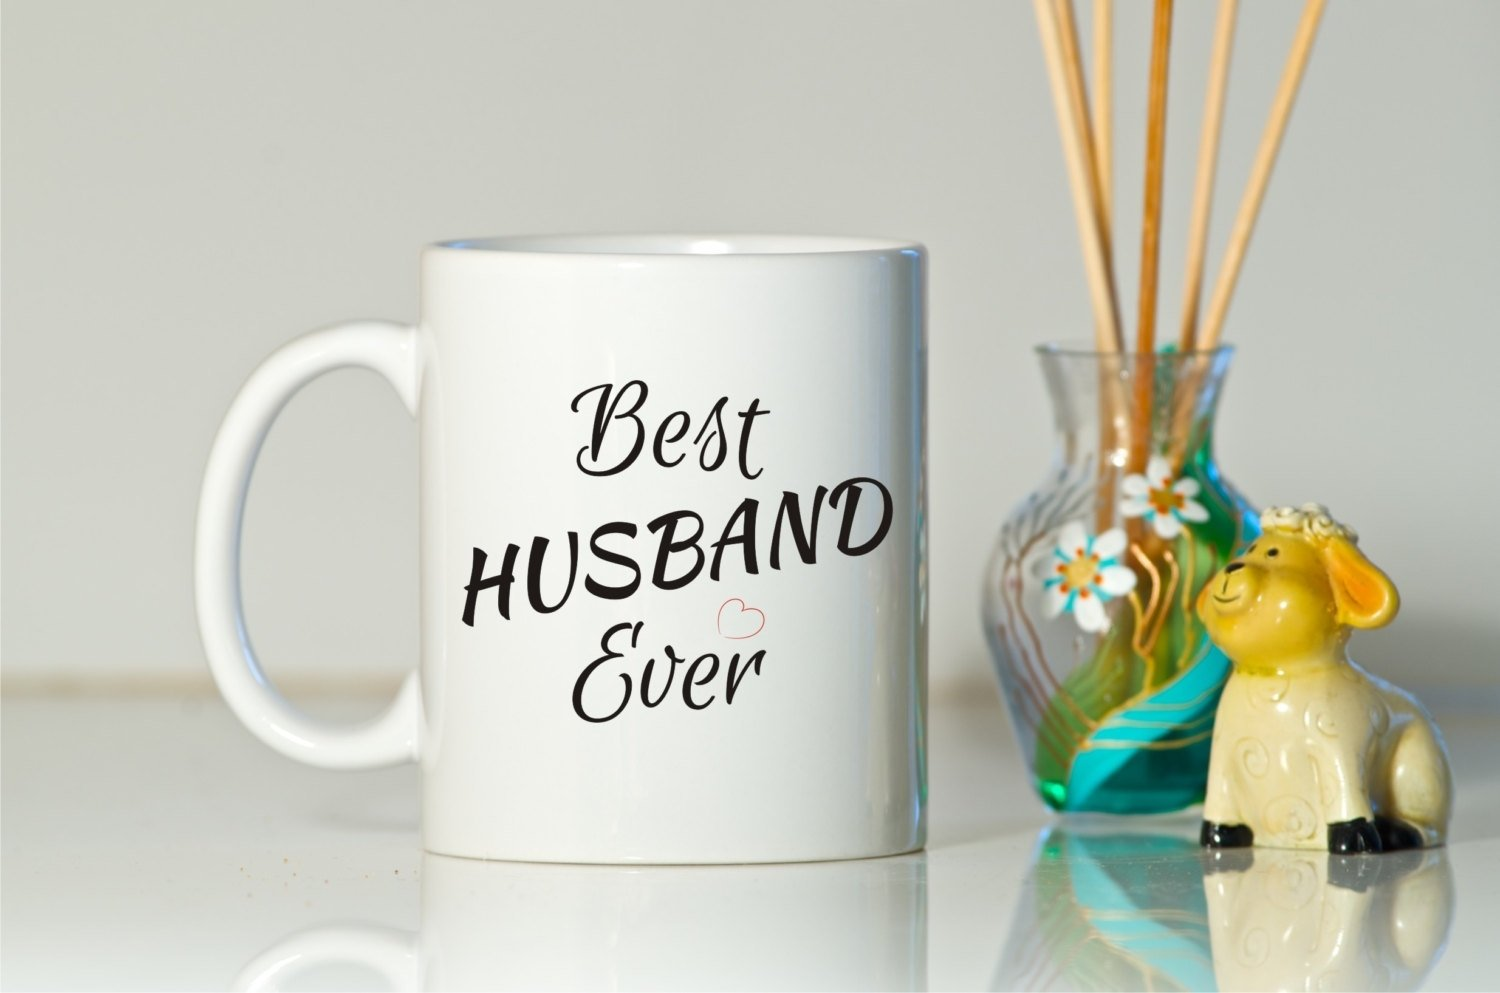 10 Cute Birthday Gifts For Husband Ideas first birthday gift for husband wife after wedding marriage anniversary 6